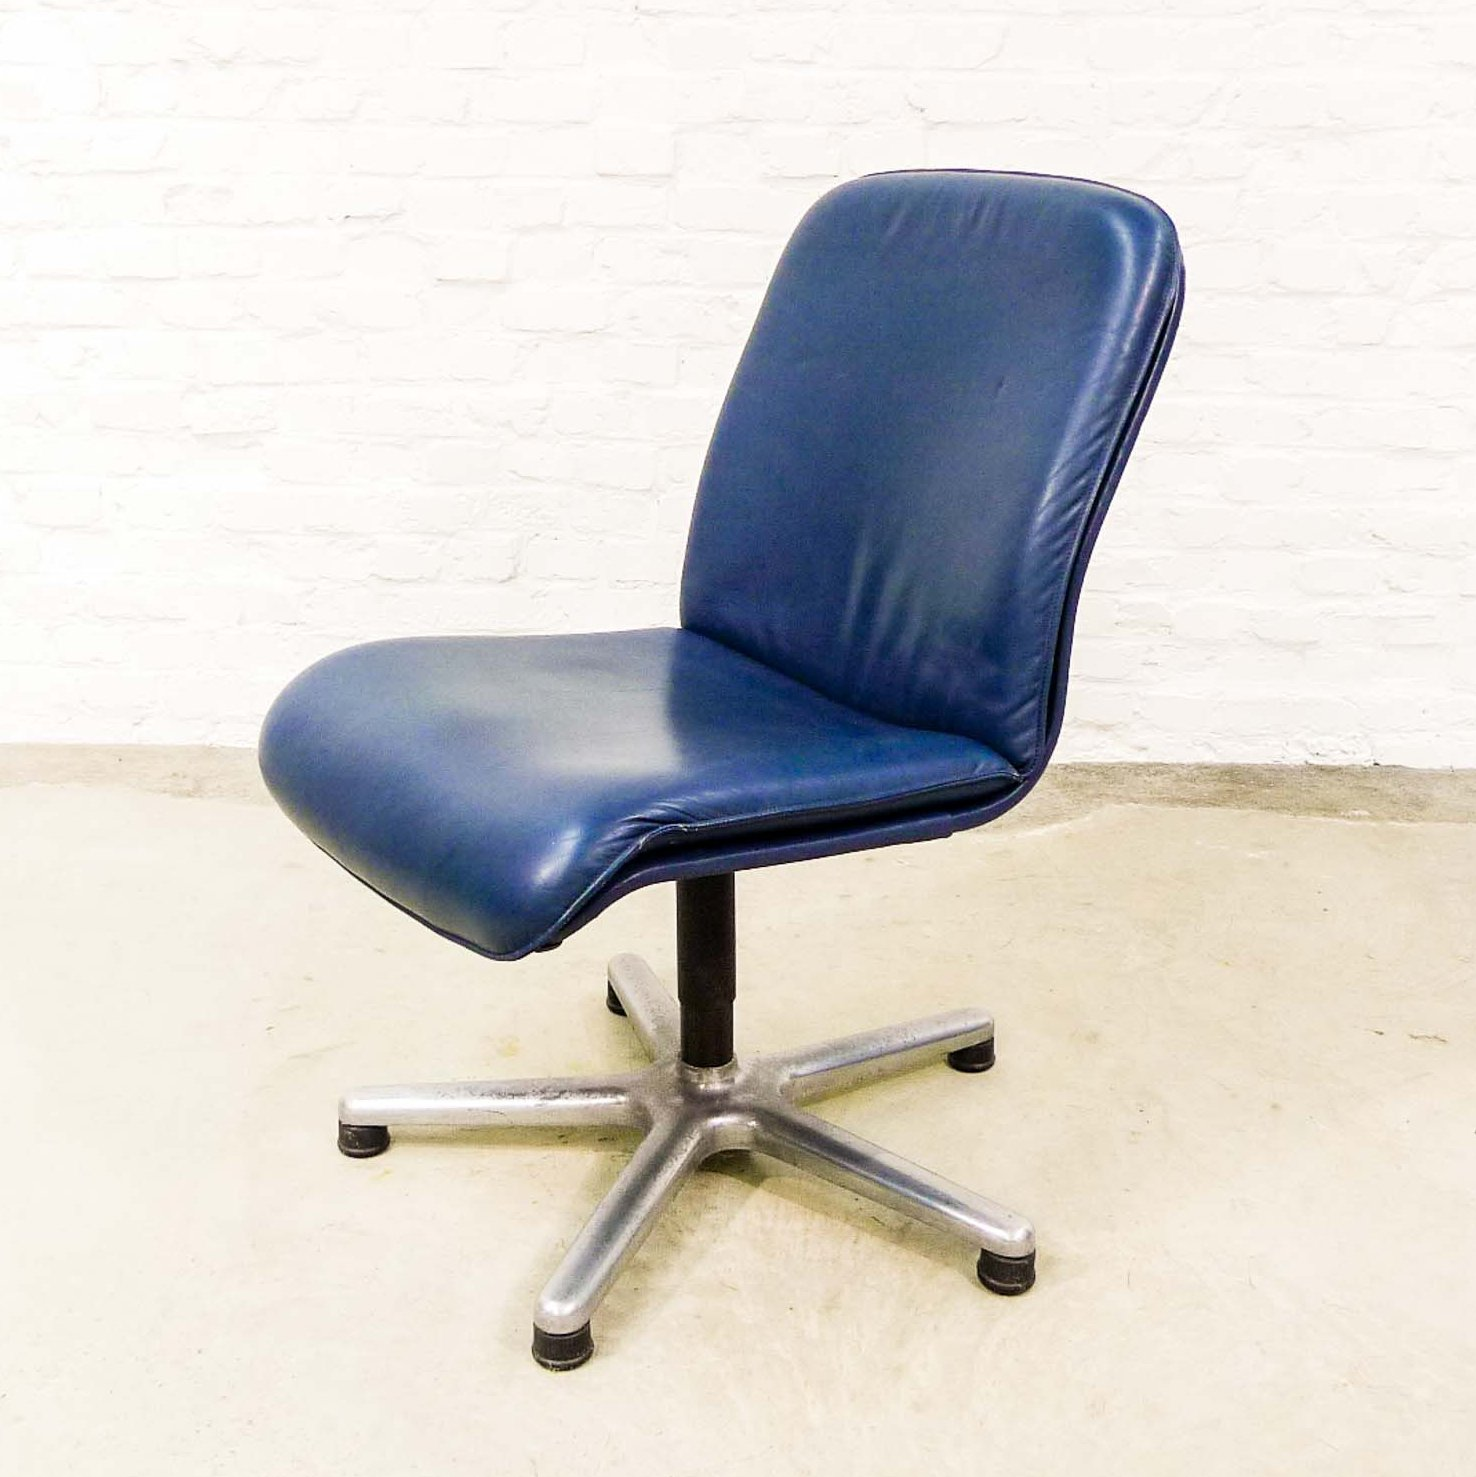 Mid Century Design Blue Leather Swivel Desk Side Chairs By Sitag 1970s